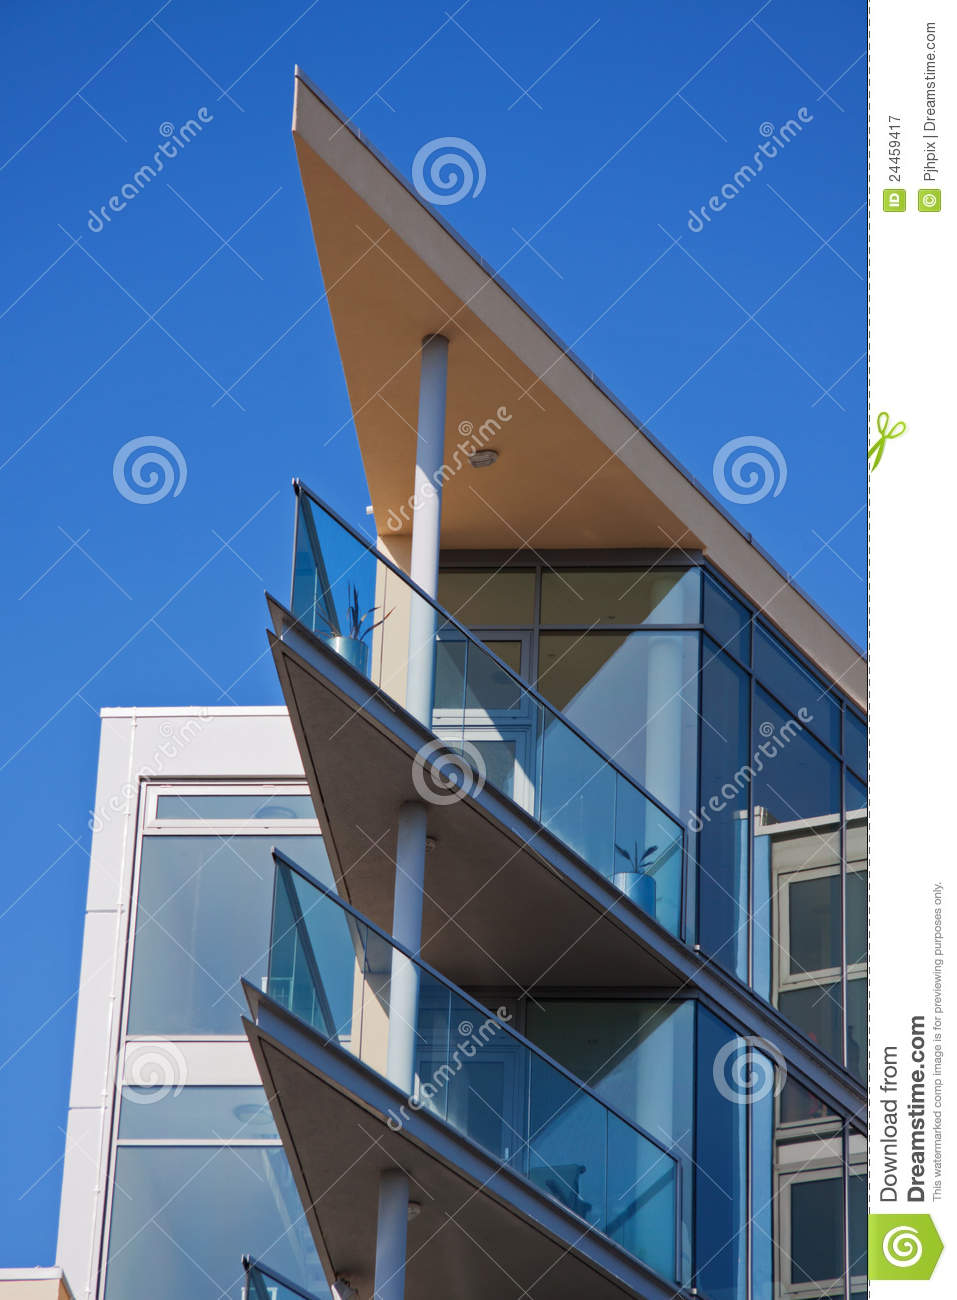 Blue Sky And Acute Angles Royalty Free Stock Photography